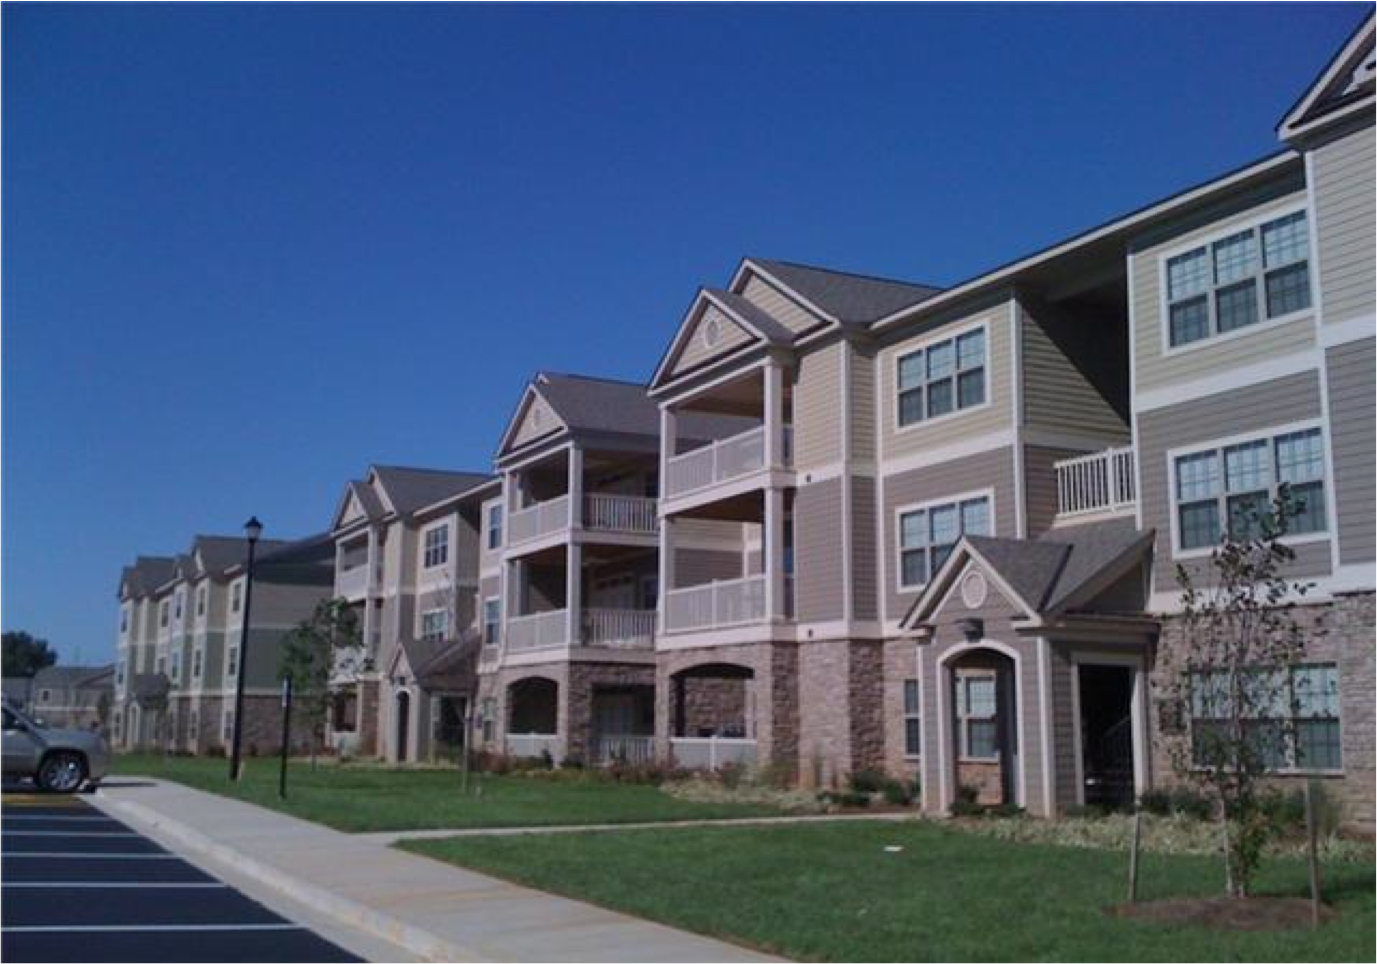 gallery plumber emergency plumbing knoxville tn 865 apartments are the new tech sector tech talents